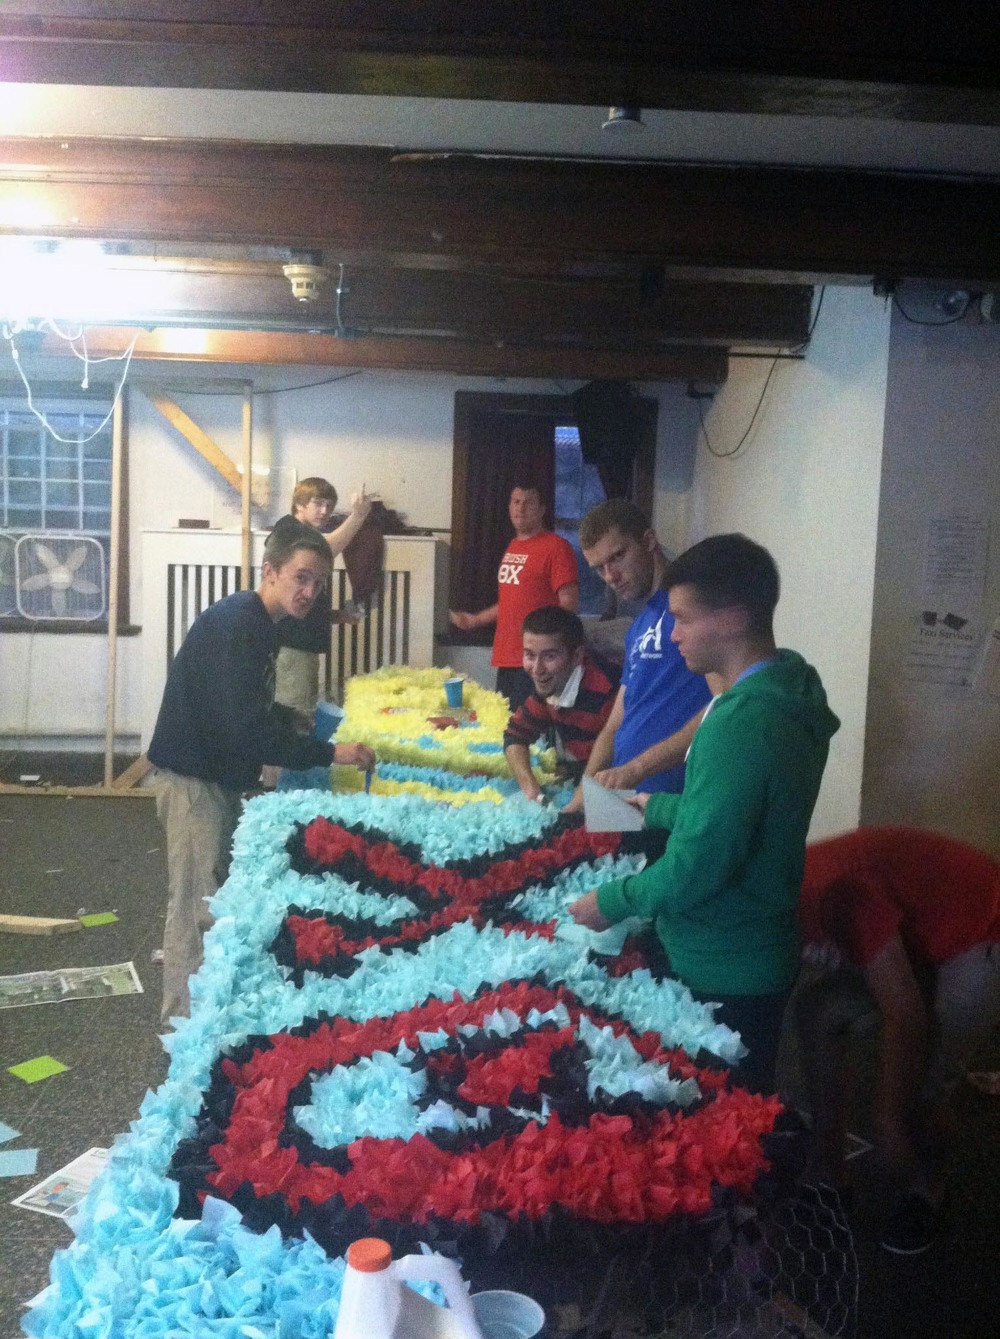 Homecoming 2013 preparations begin with float building - L to R: Sean McCrea, Nick Stadtlander, Jerry Douglas Crompton, Sam Kulp, Brandon Nicklas and Greg Black - Oct. 8, 2013